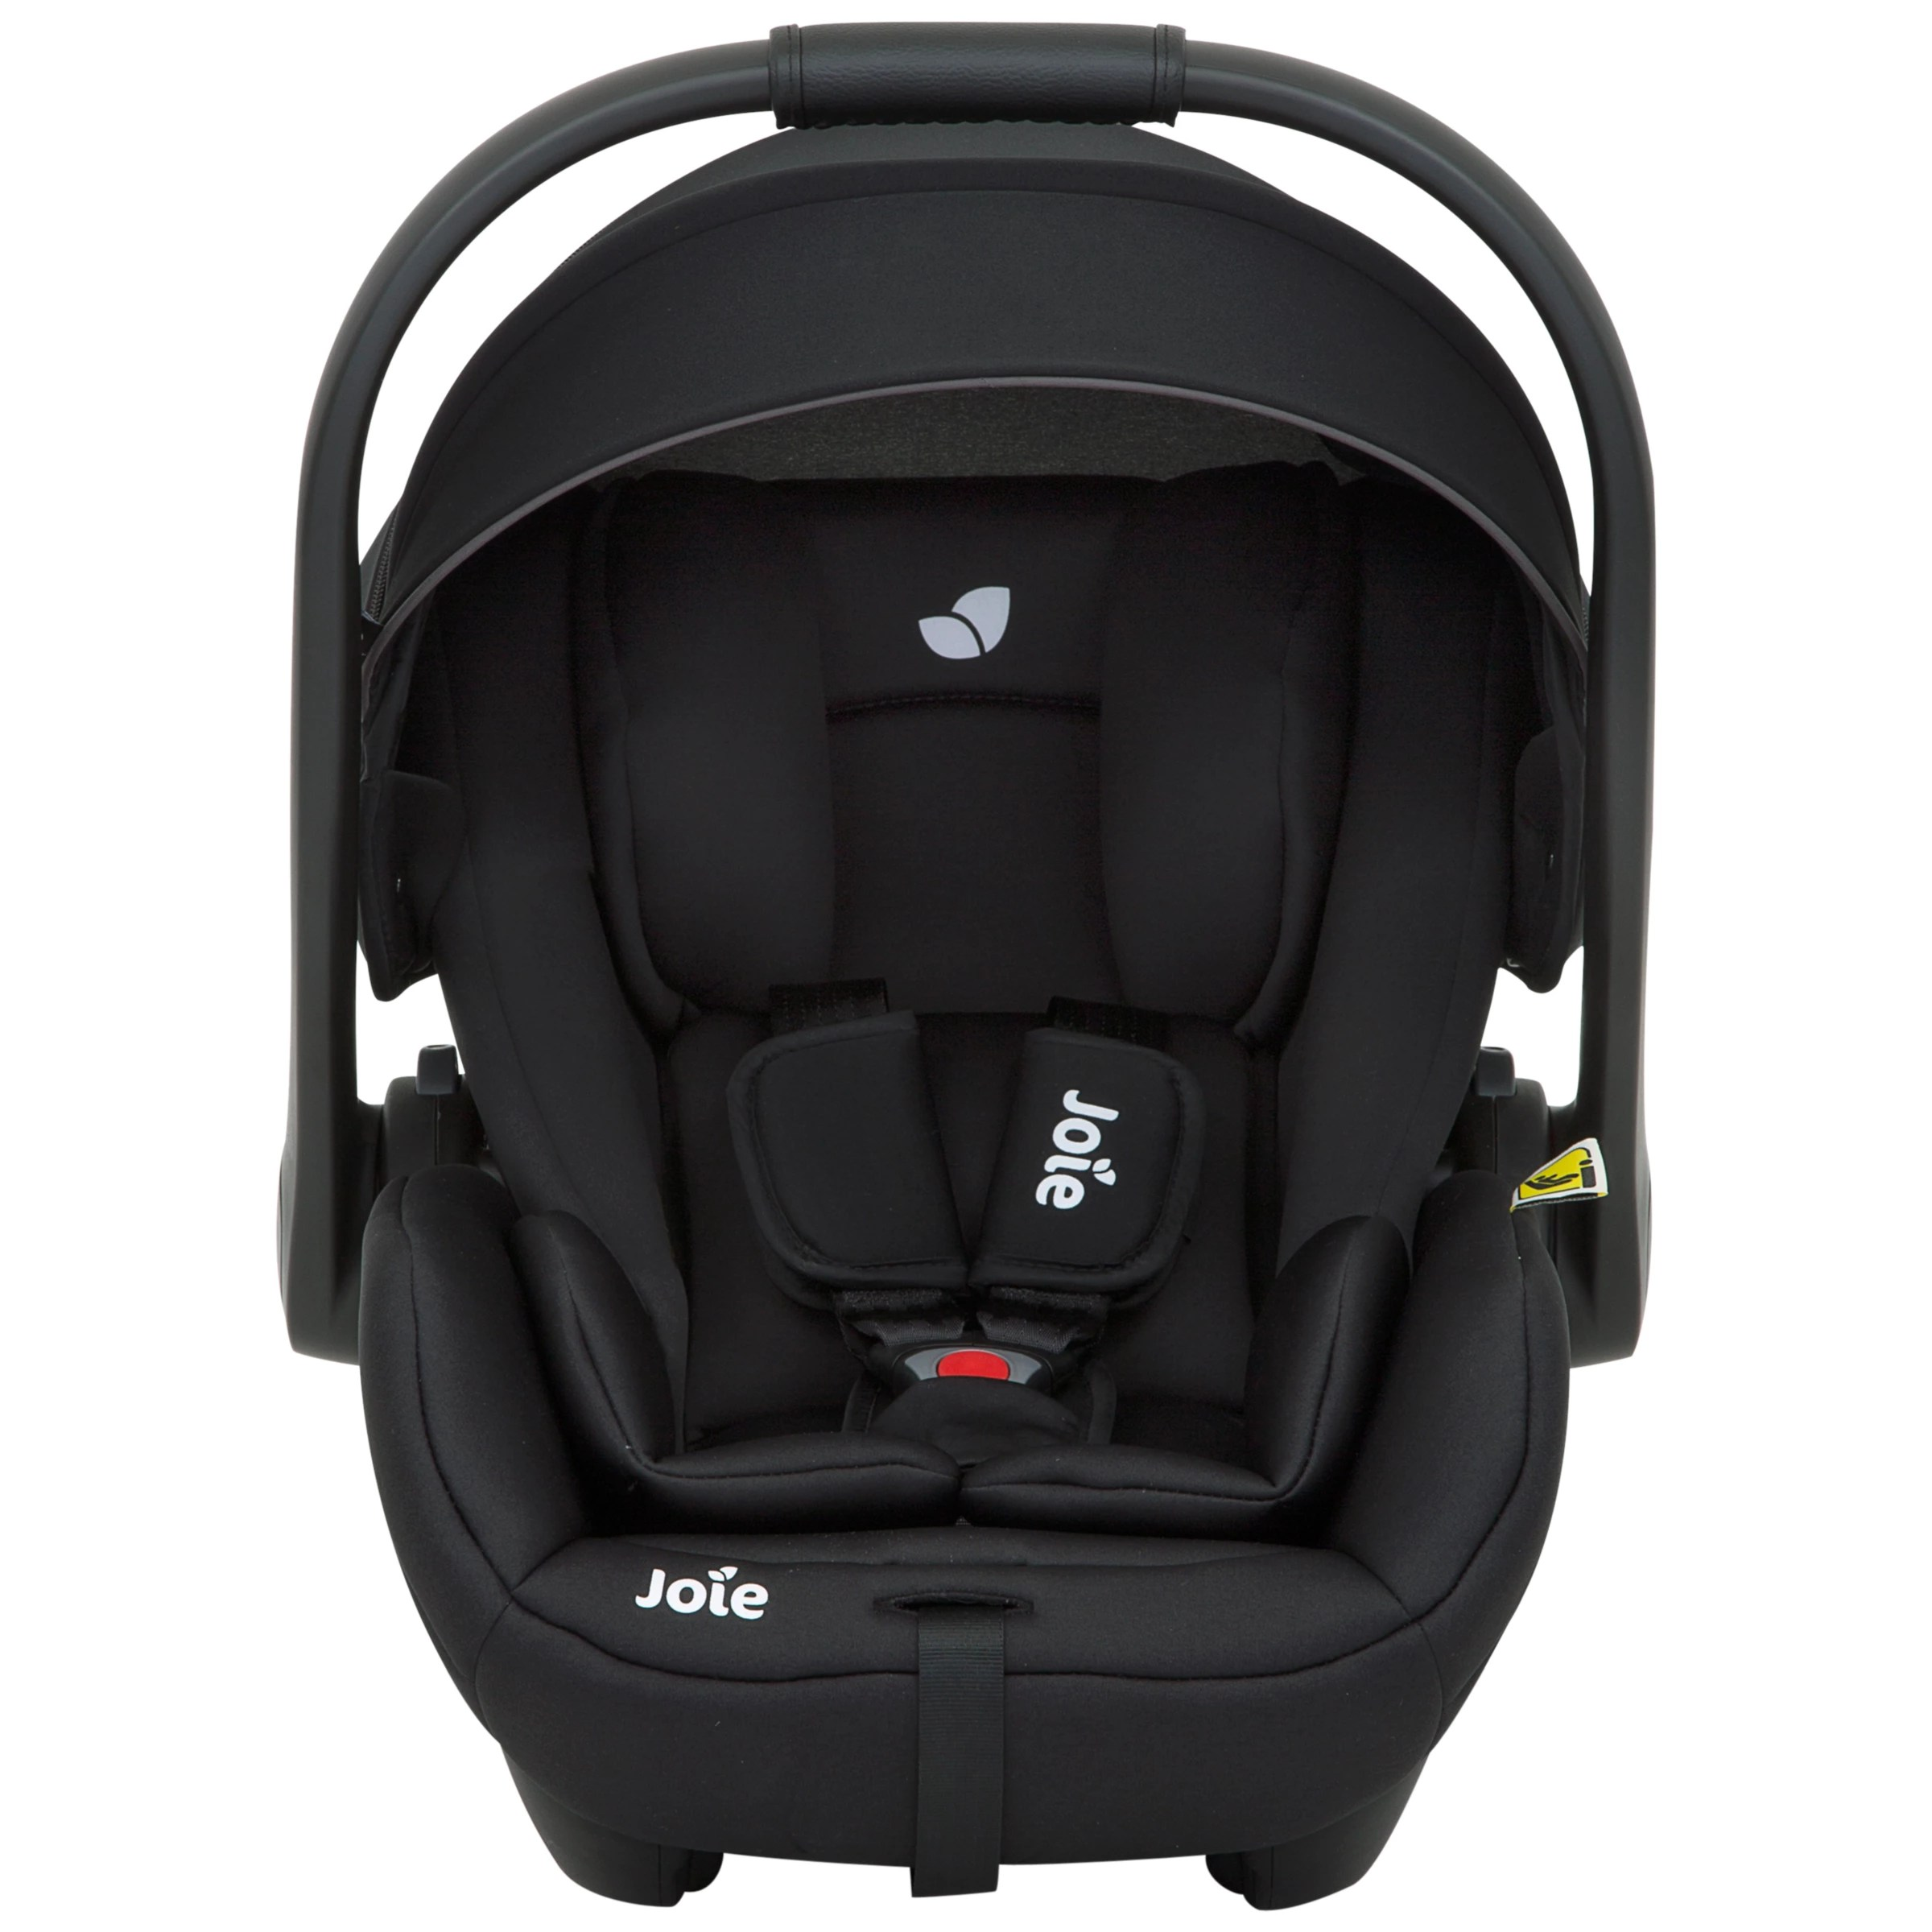 Joie Isofix Base Uk Joie Baby I Level Group Baby Car Seat Coal